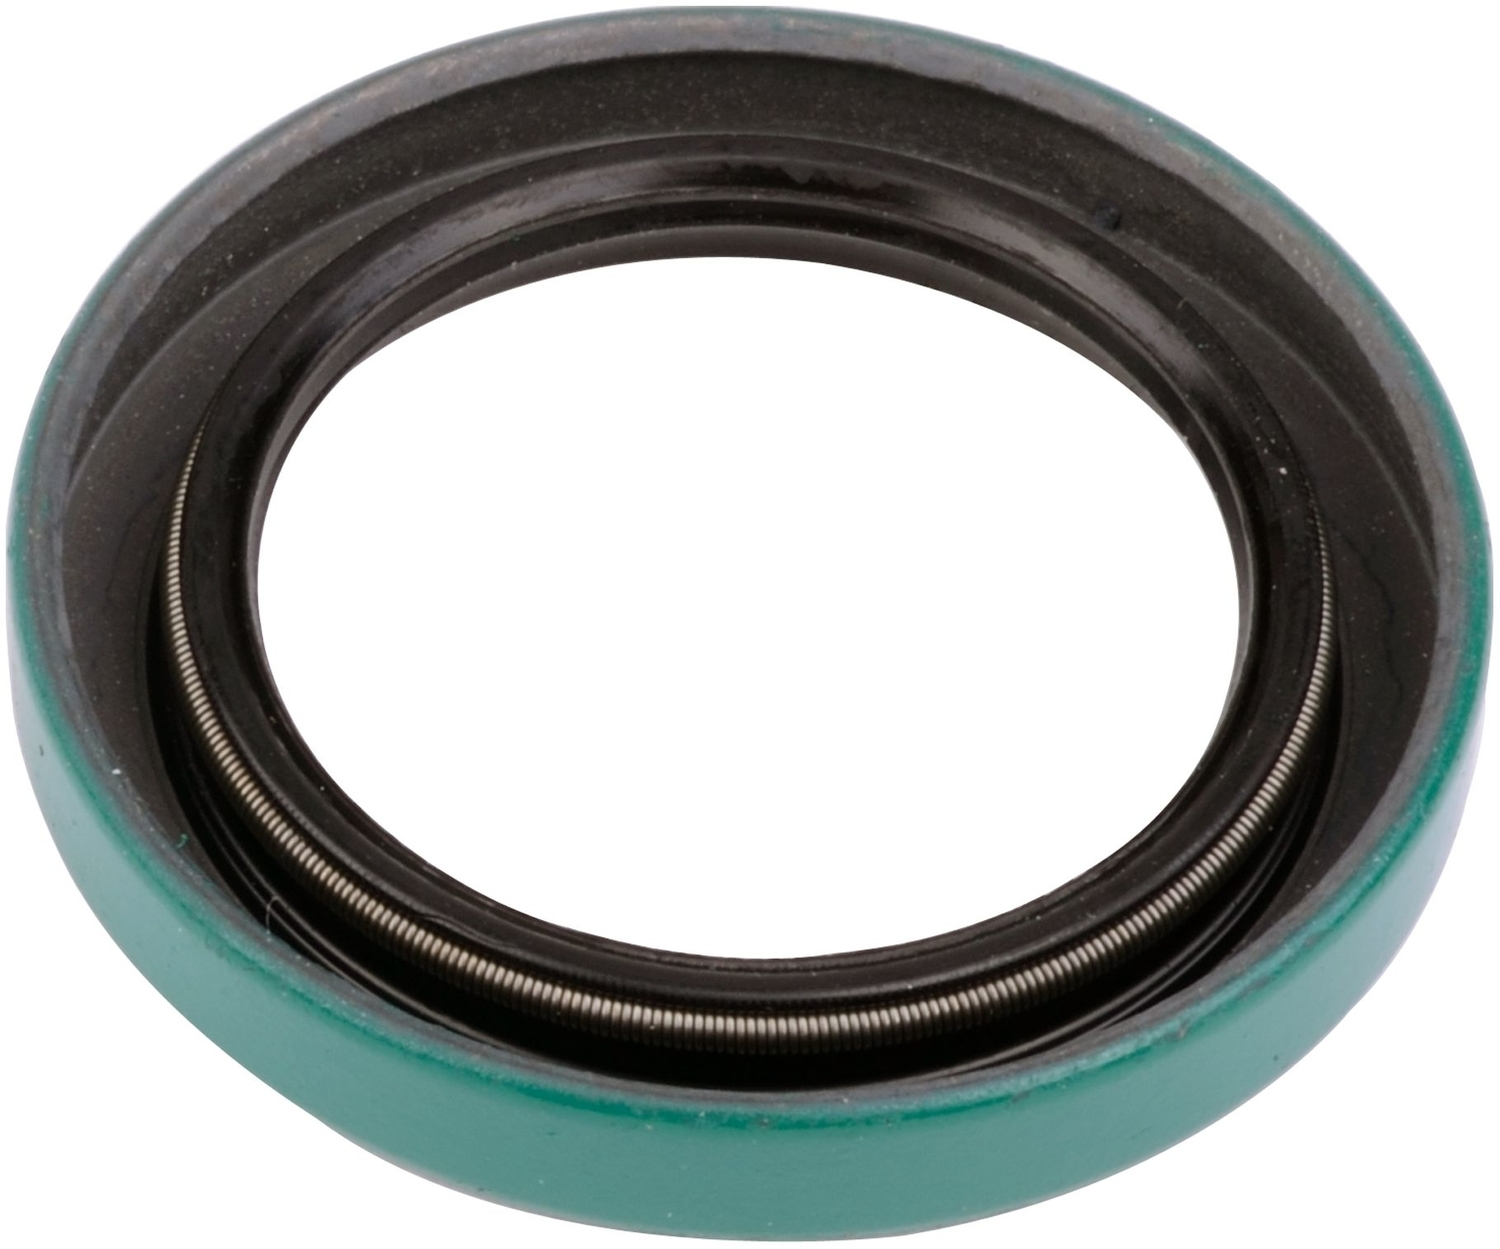 SKF (CHICAGO RAWHIDE) - Front Seal - SKF 12363